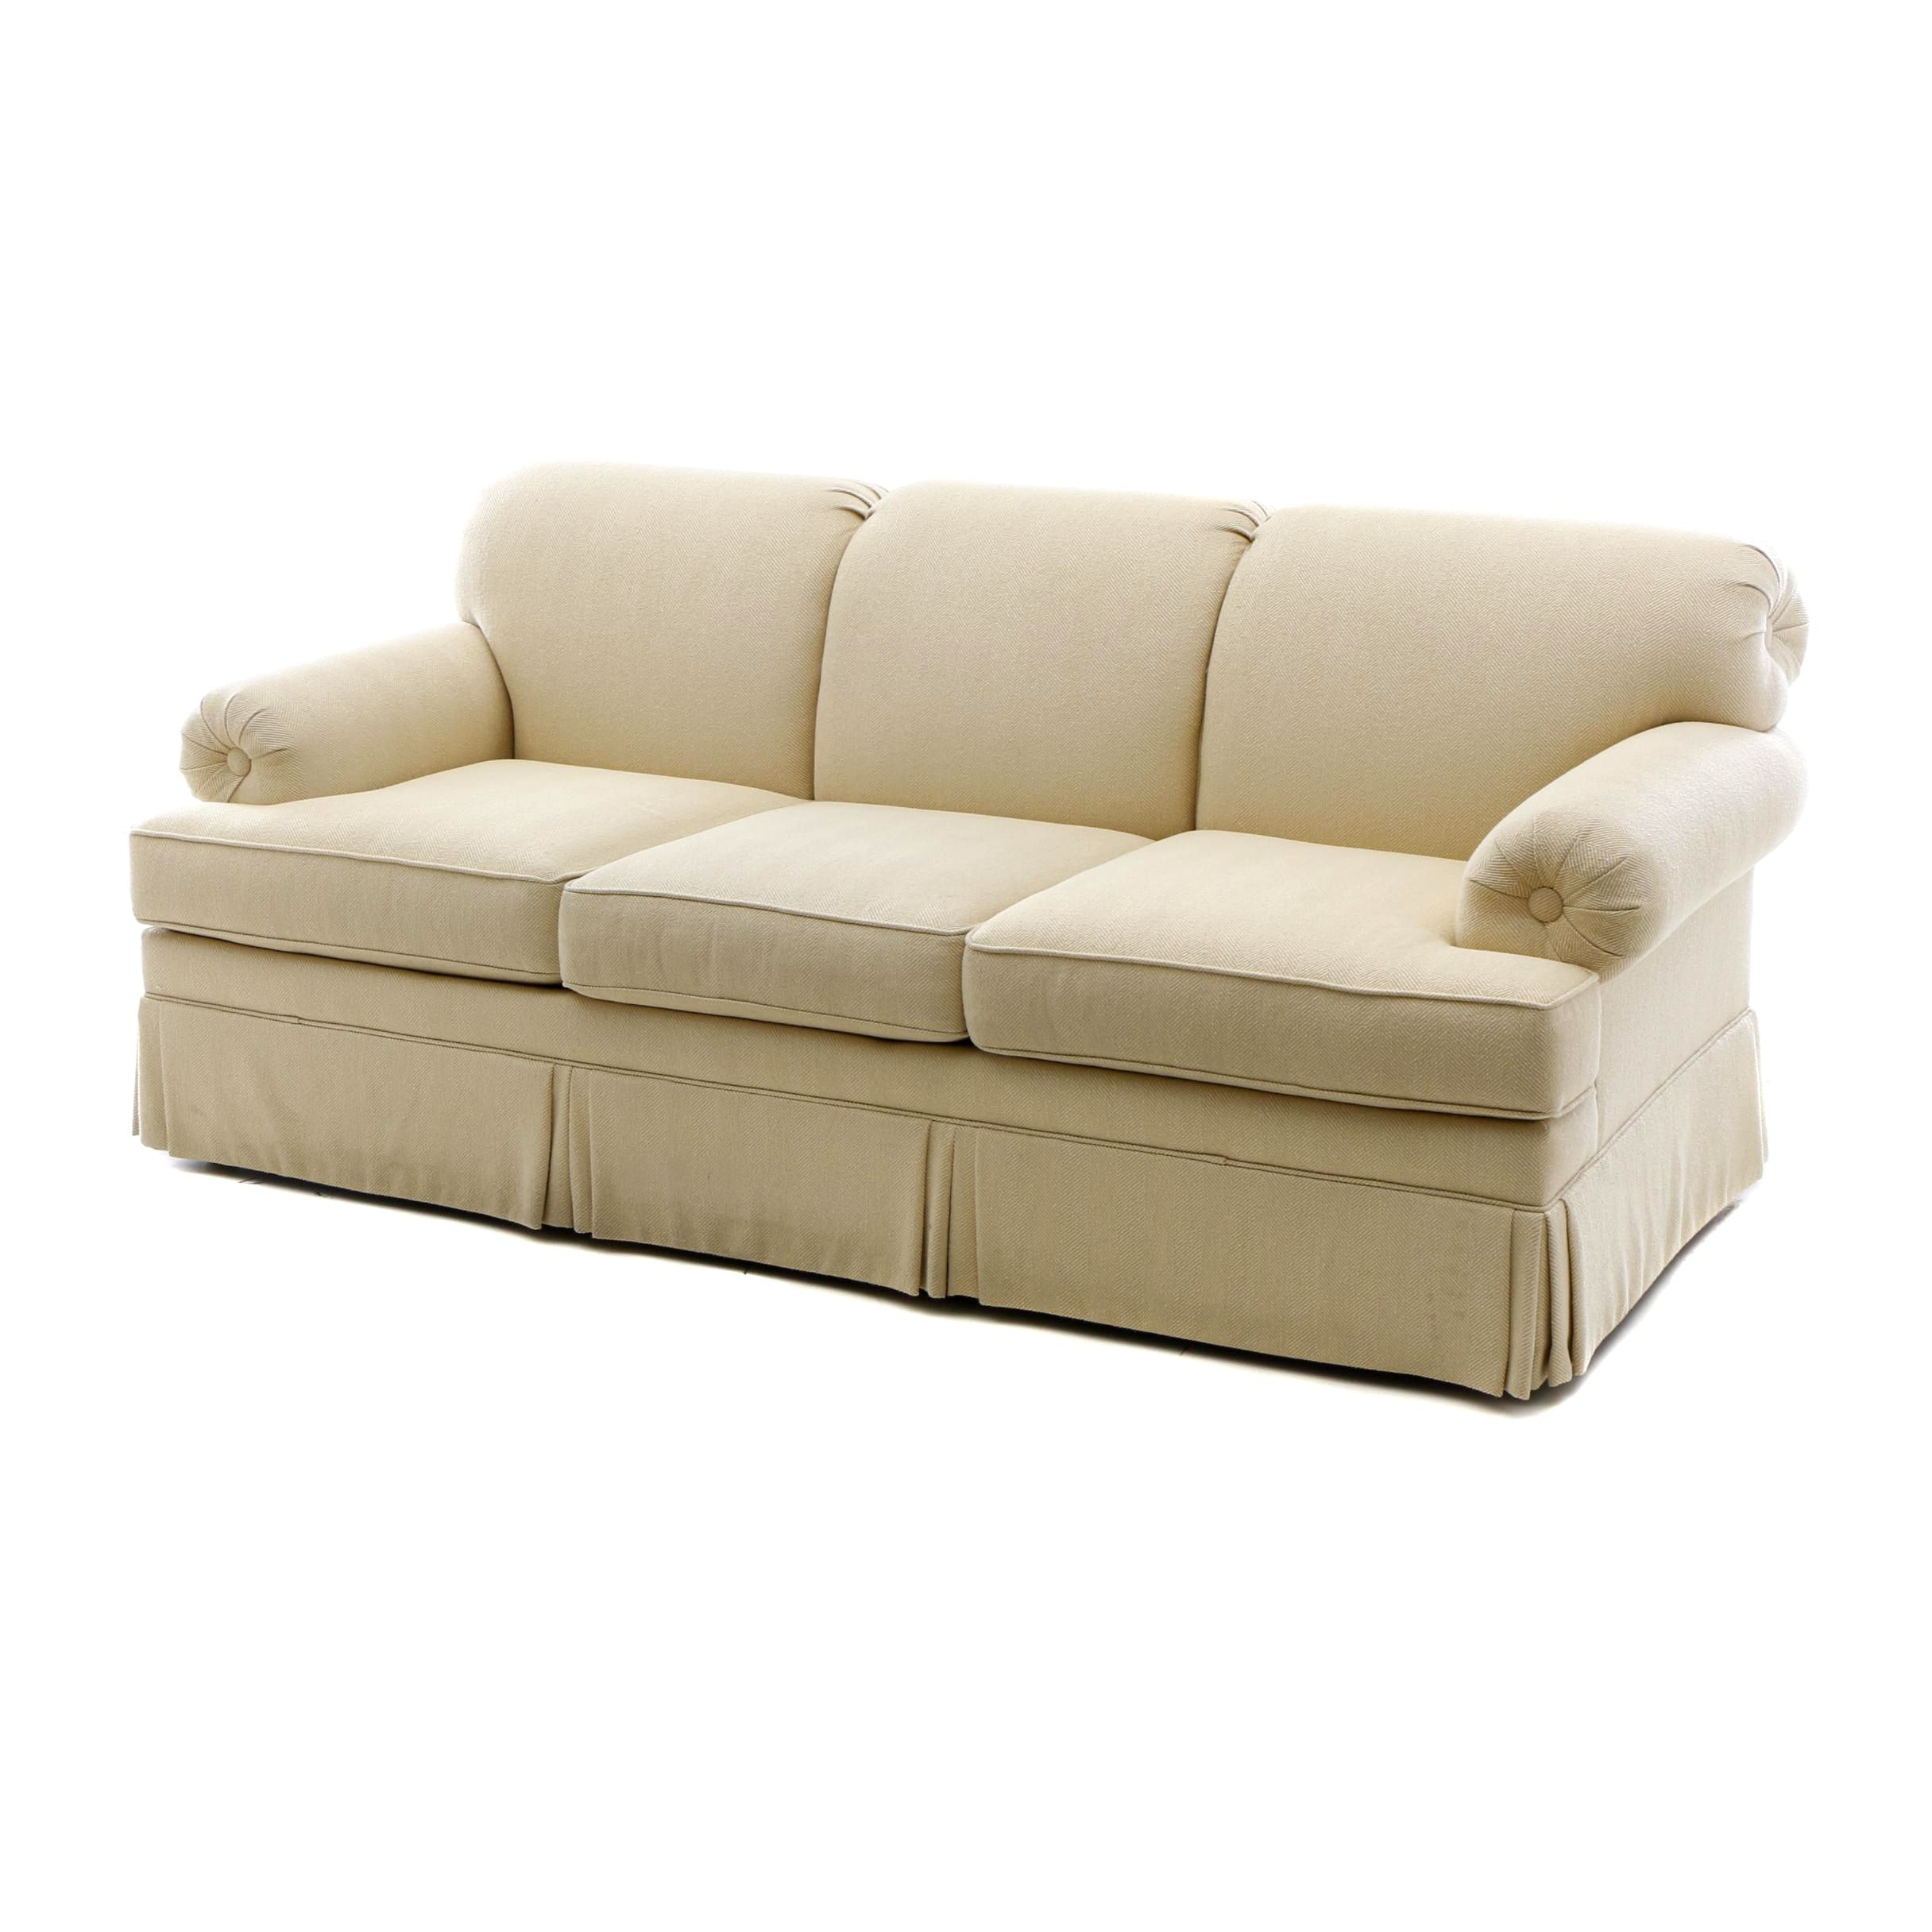 Contemporary Upholstered Sofa by Ethan Allen